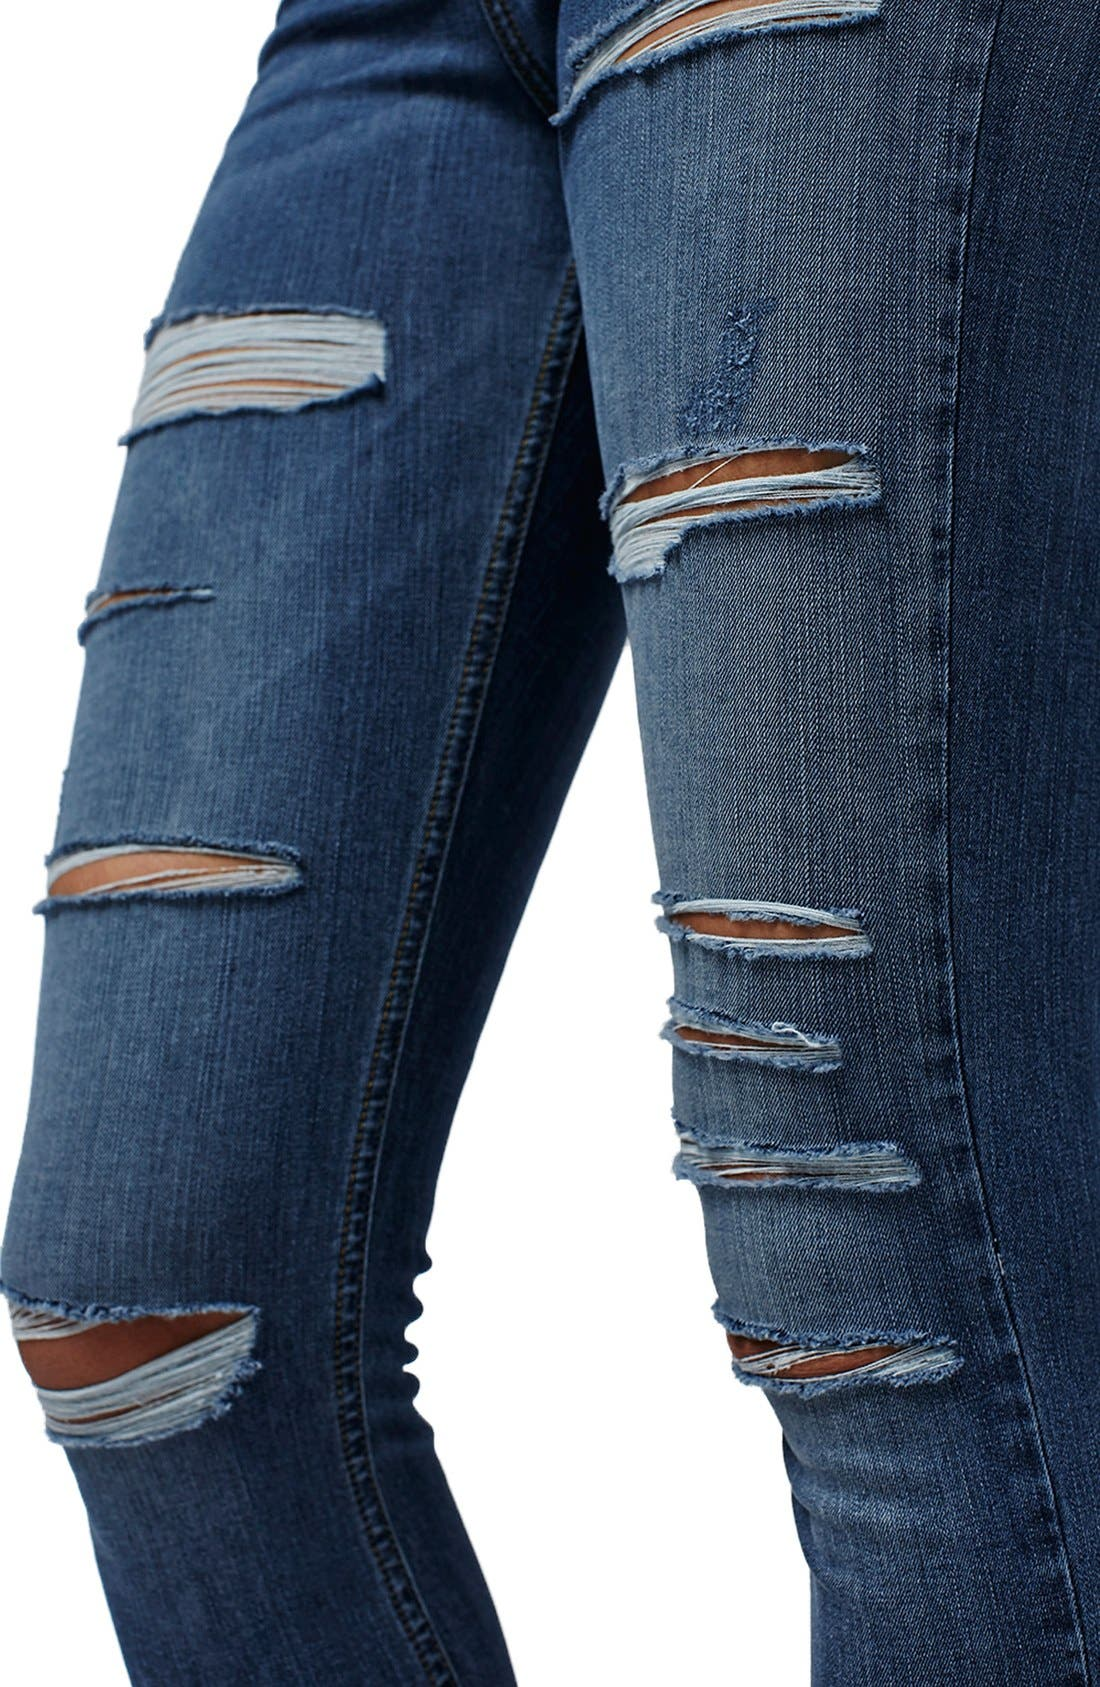 TOPSHOP, Jamie Ripped High Rise Skinny Jeans, Main thumbnail 1, color, 400